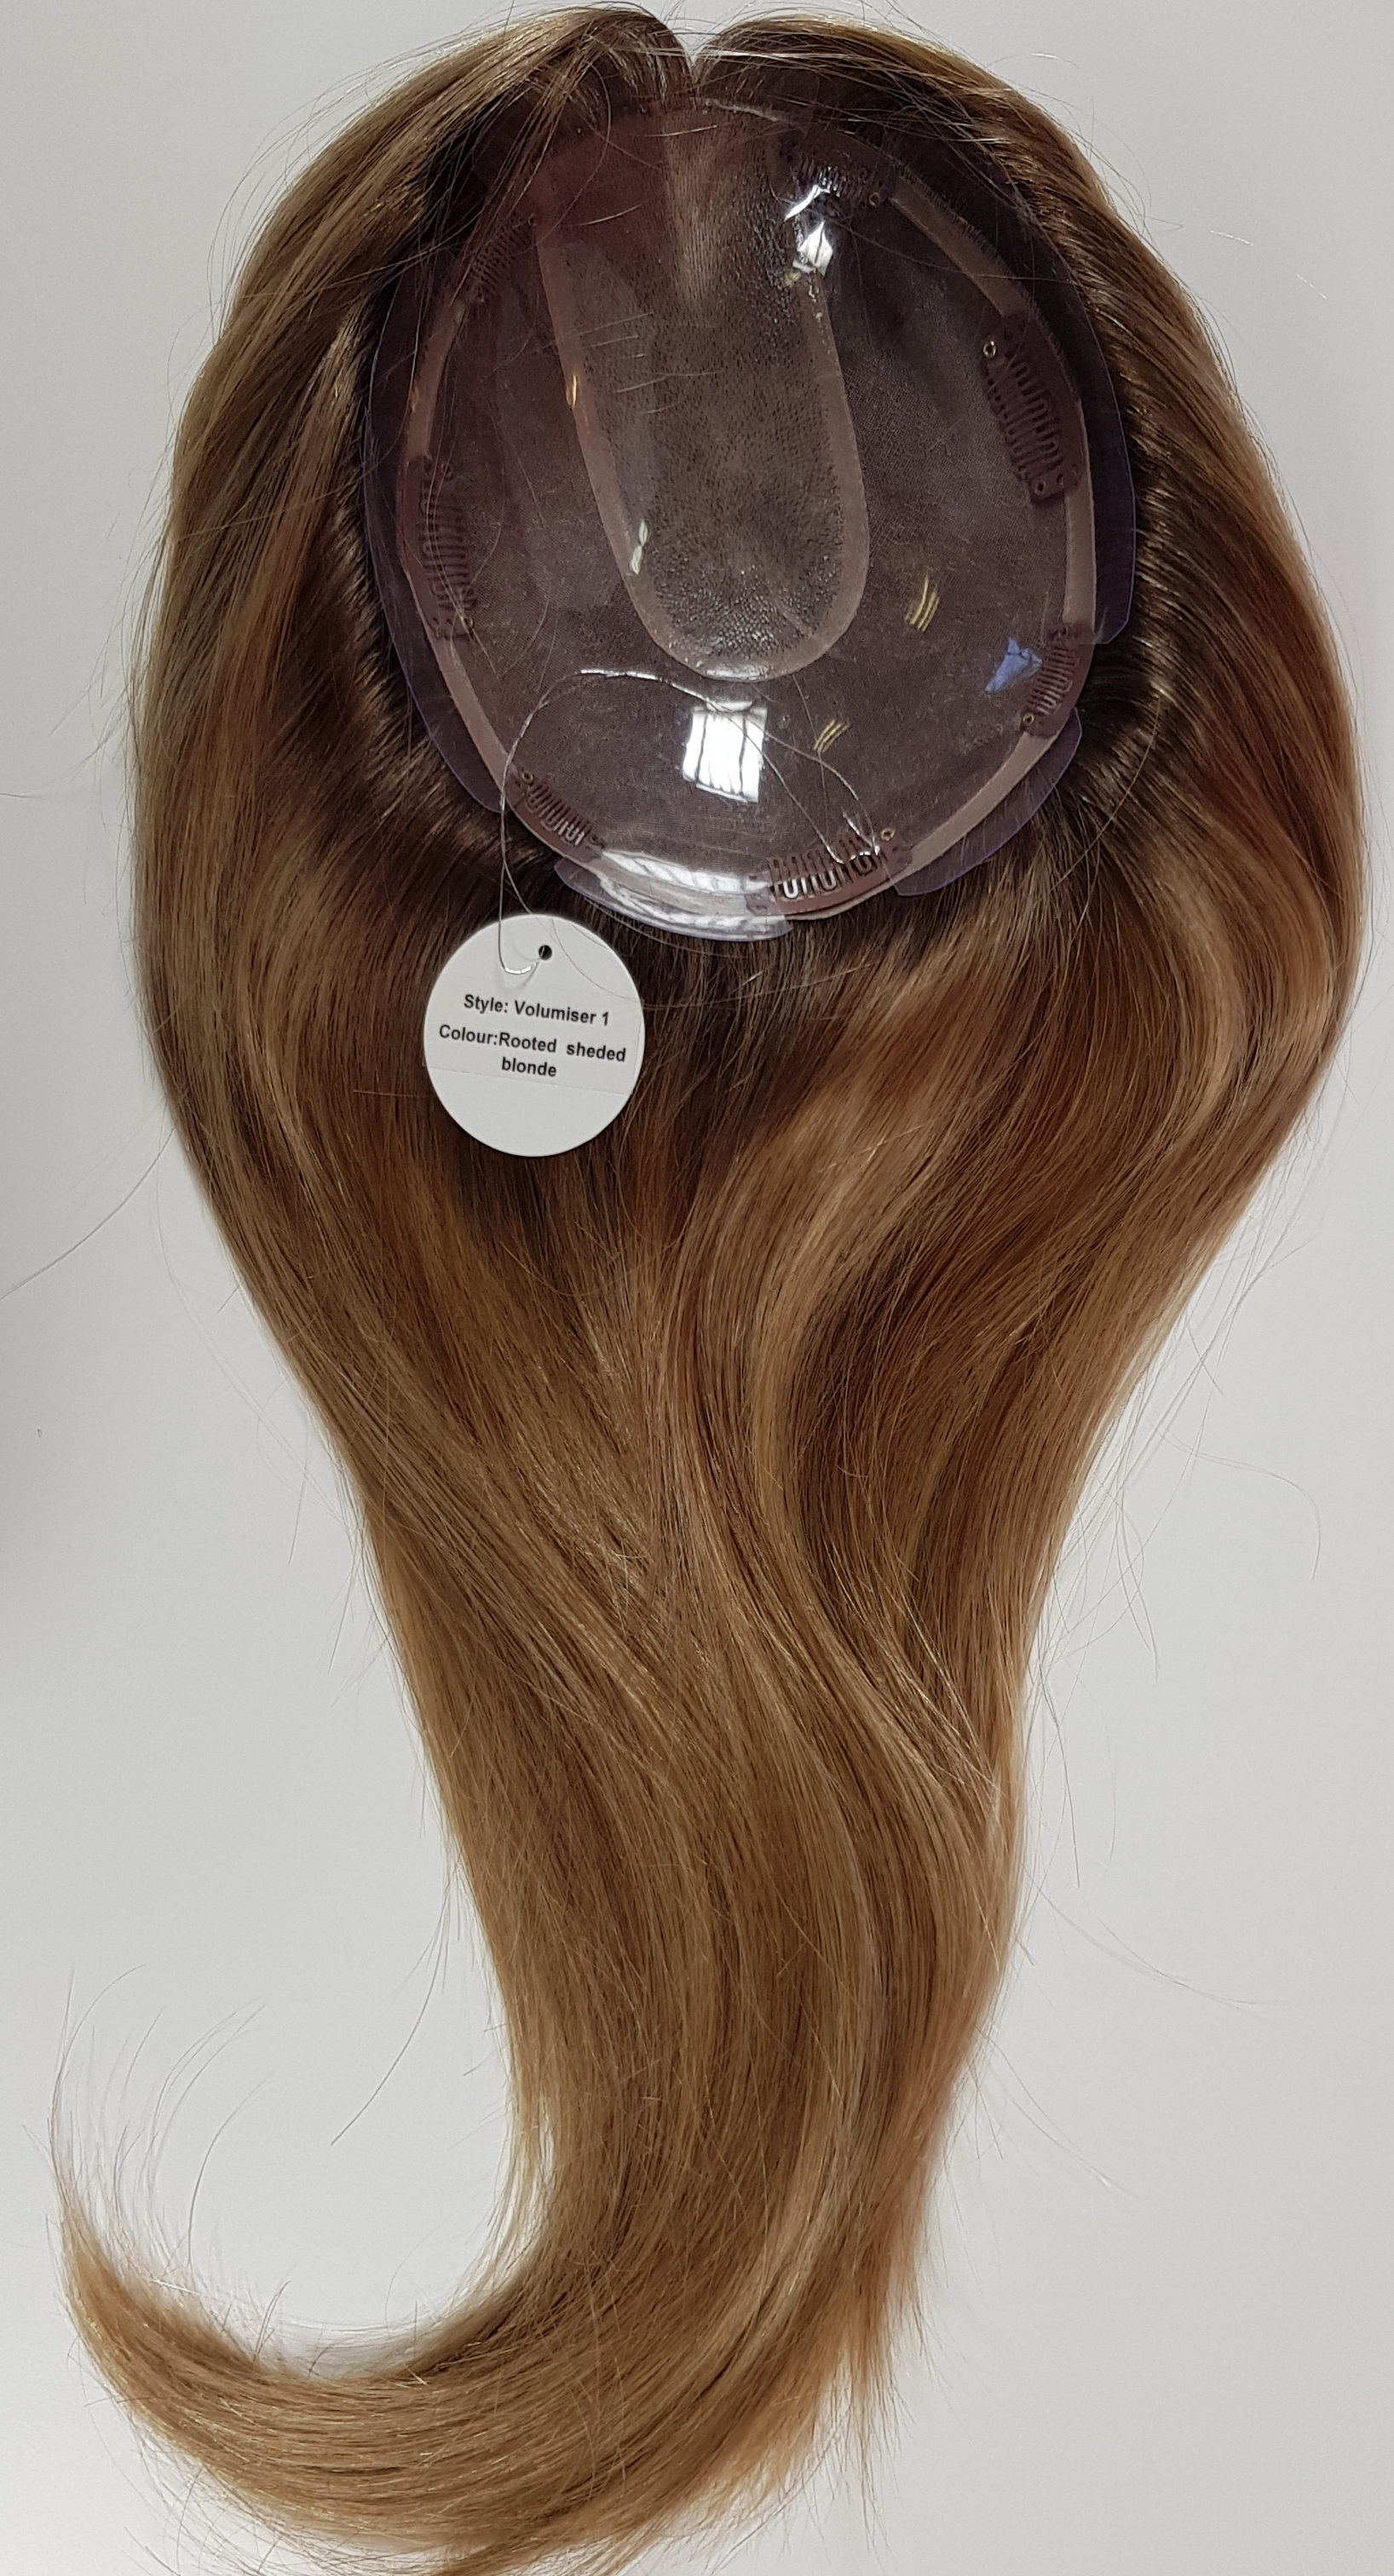 Hair Toppers Style Juliet Colour Rooted Sheded Blonde